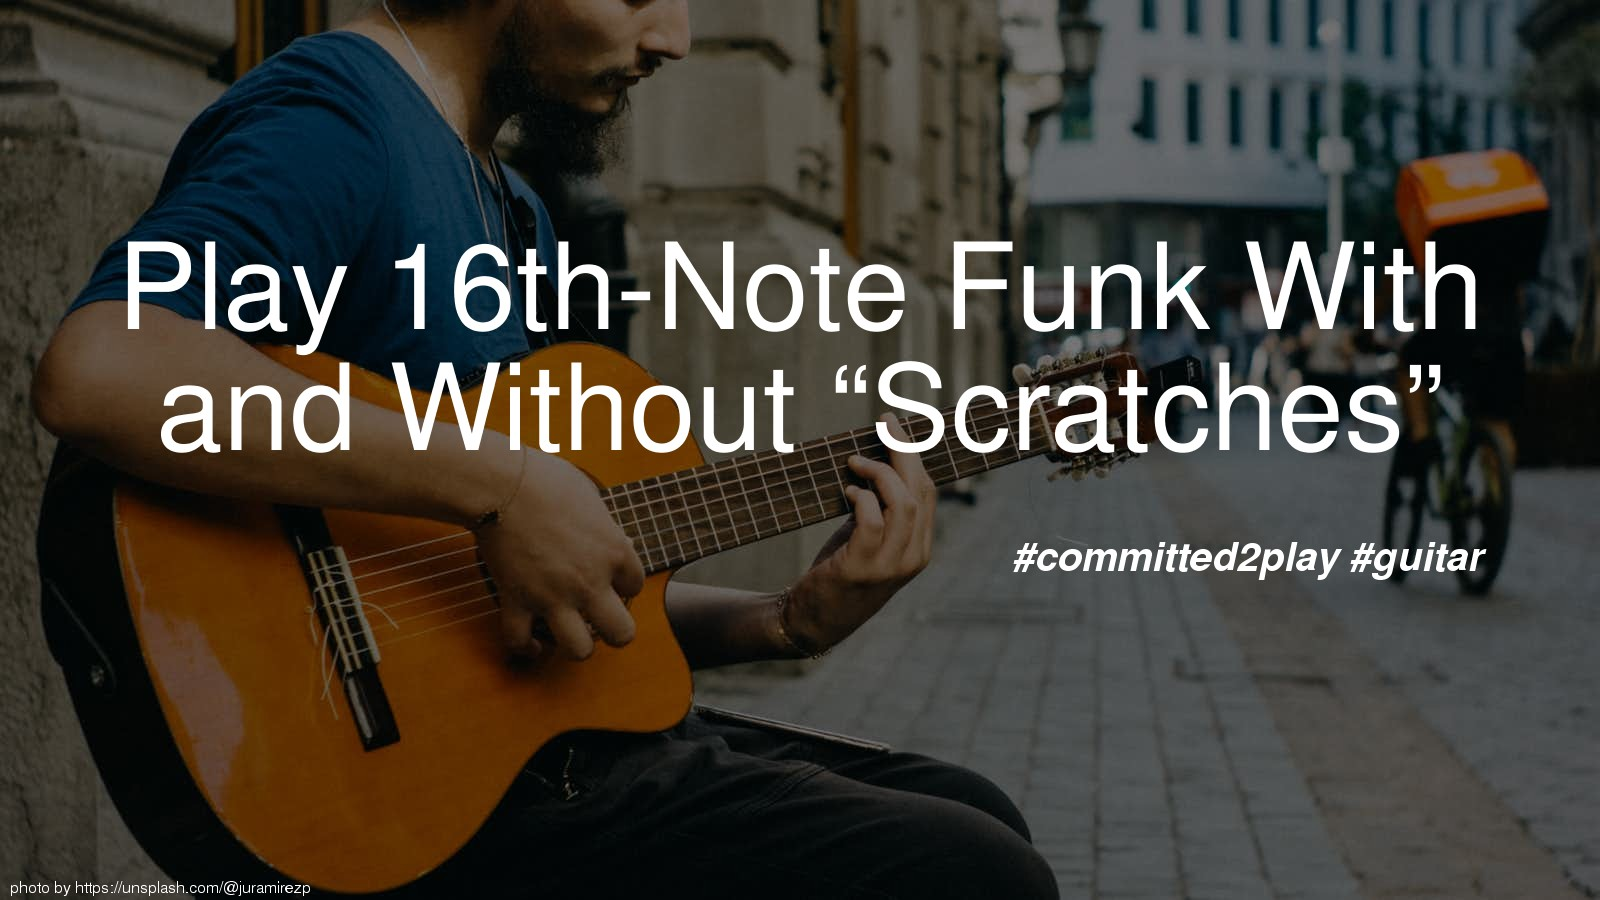 "Play 16th-Note Funk With and Without ""Scratches"""